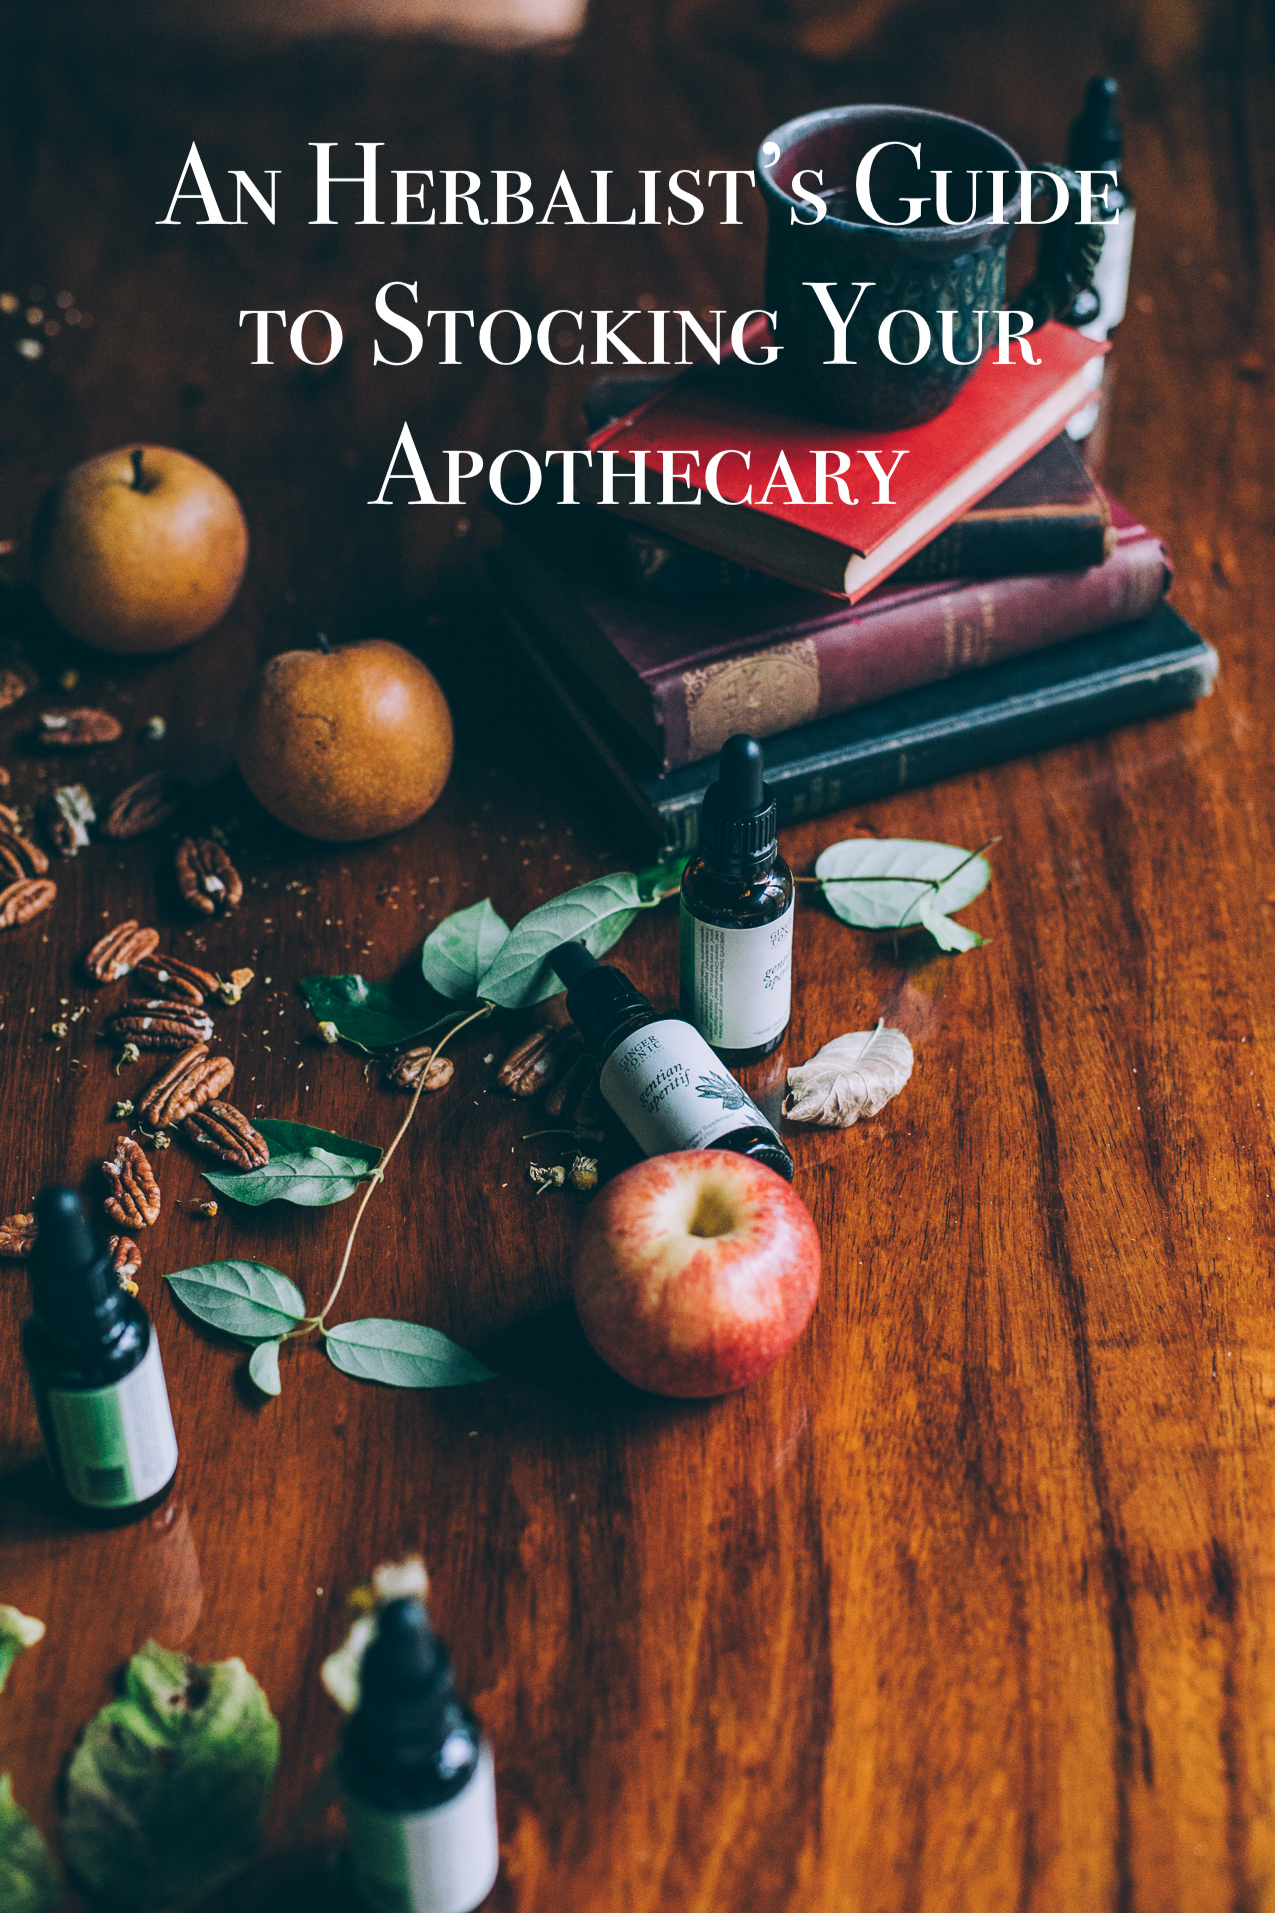 Herbalist's Guide to Stocking Your Apothecary